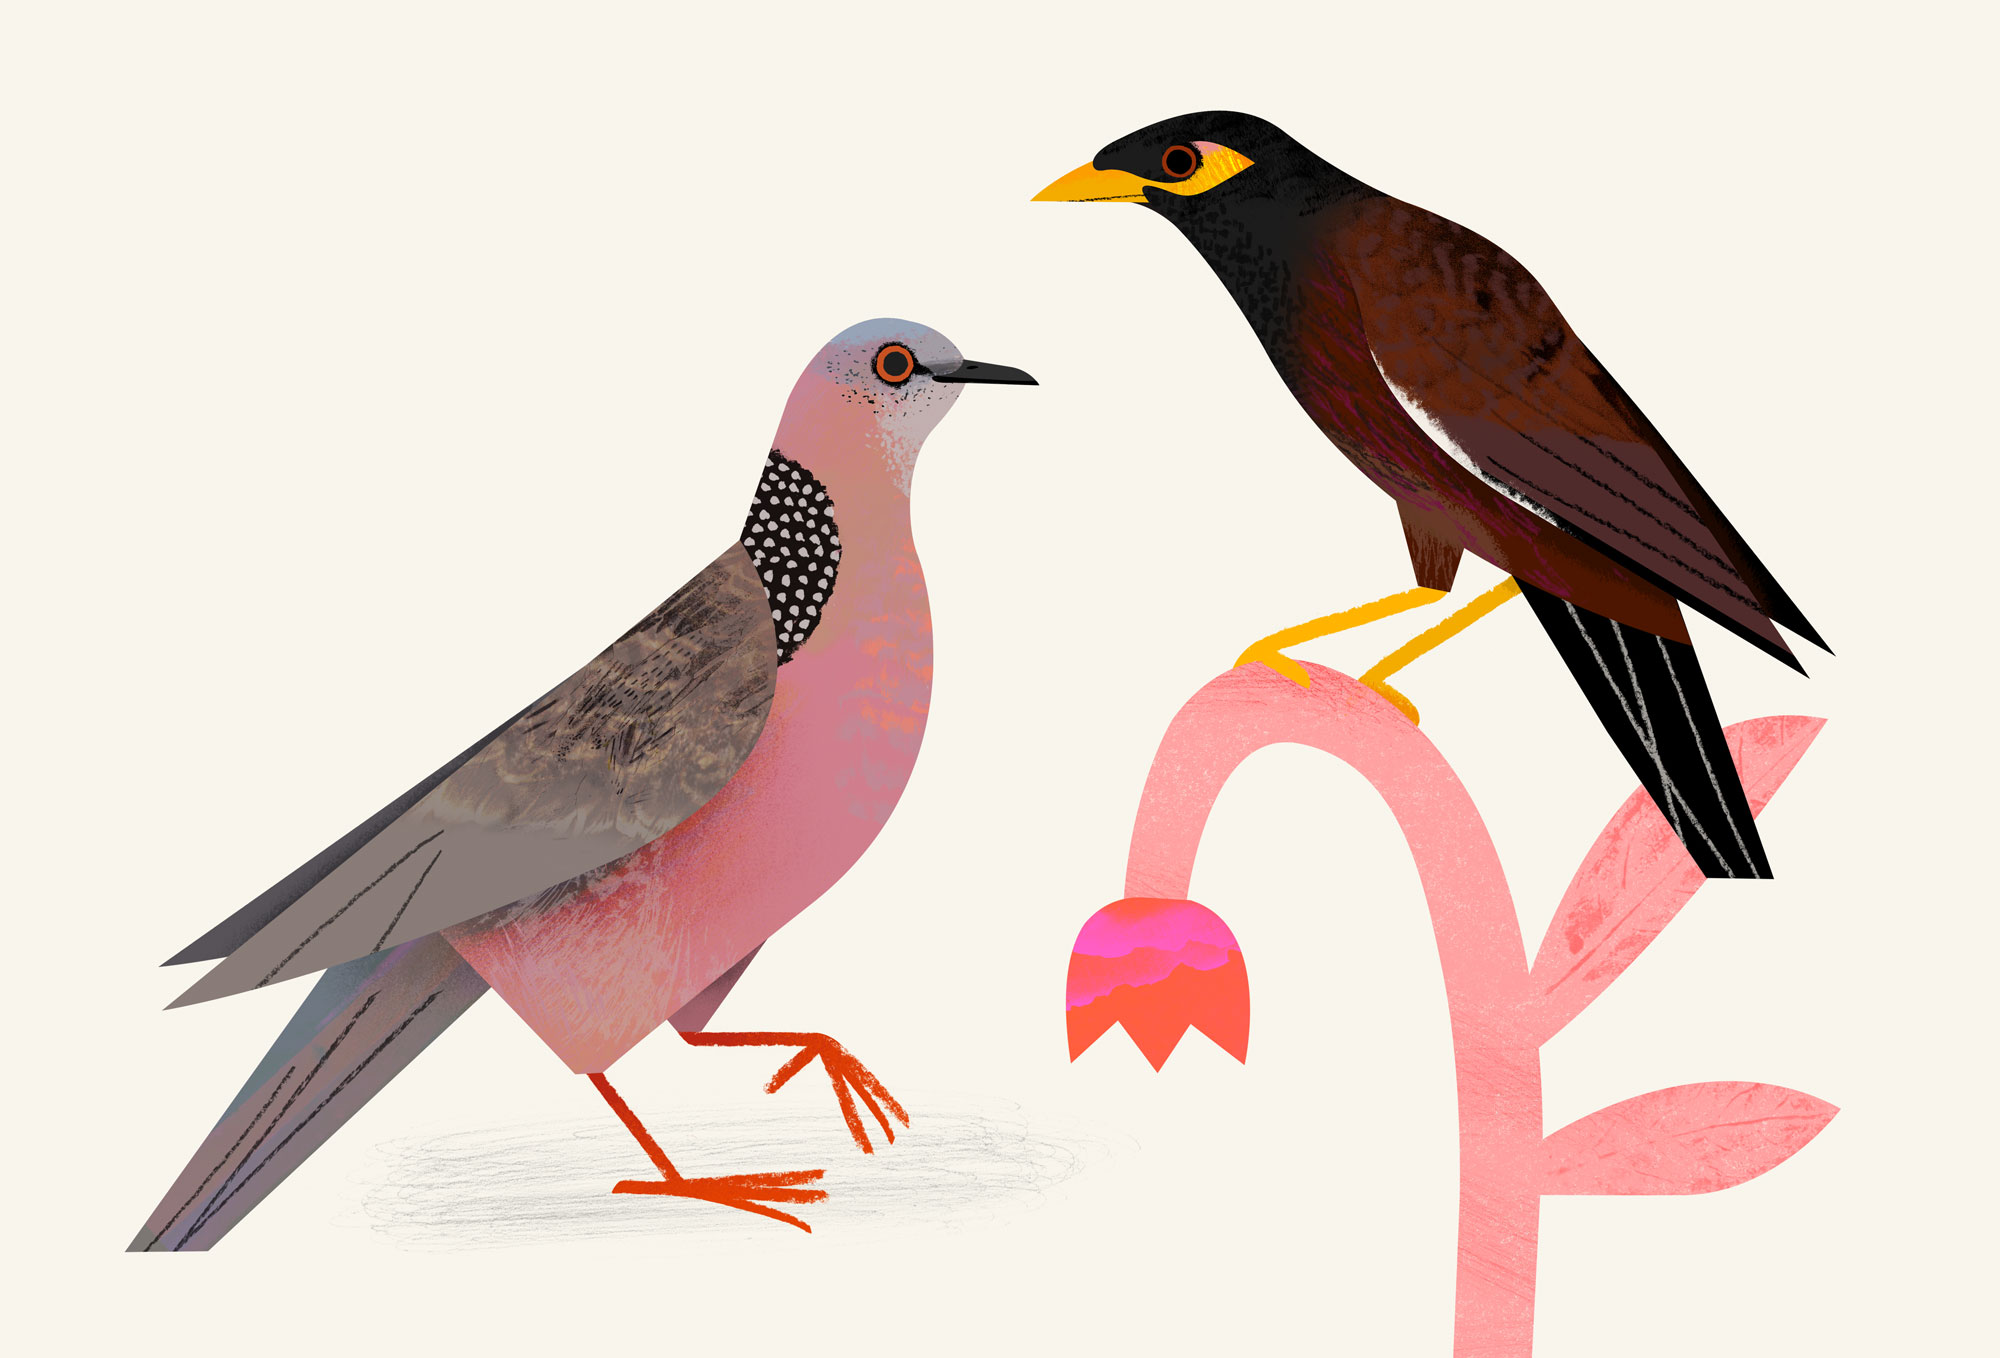 common-myna-and-spotted-dove-by-Natasha-Durley.jpg